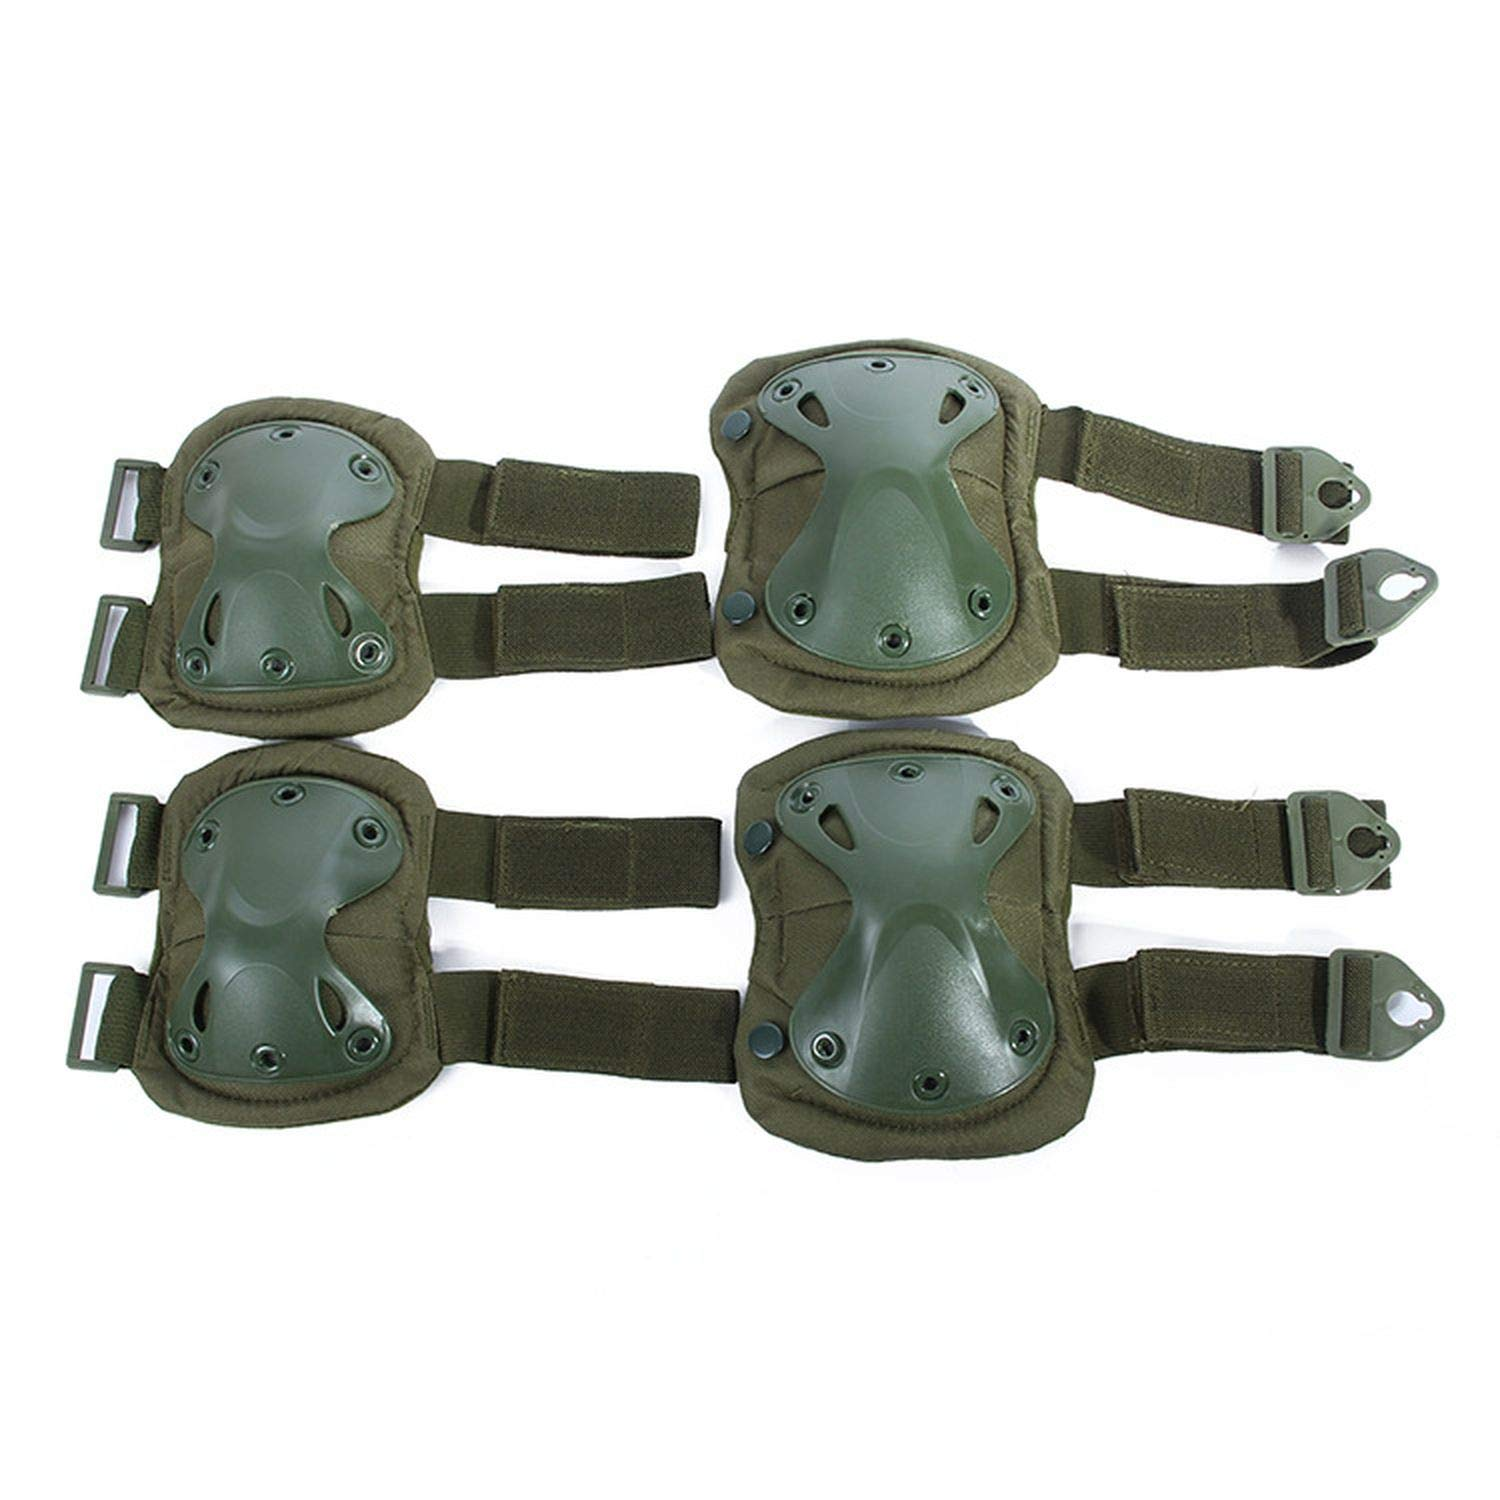 B size 4 PCS Set Tactical Knee Pads Sets Outdoor Sports Paintball Military Predective Gear Knee Elbow Pads Brace Predectors